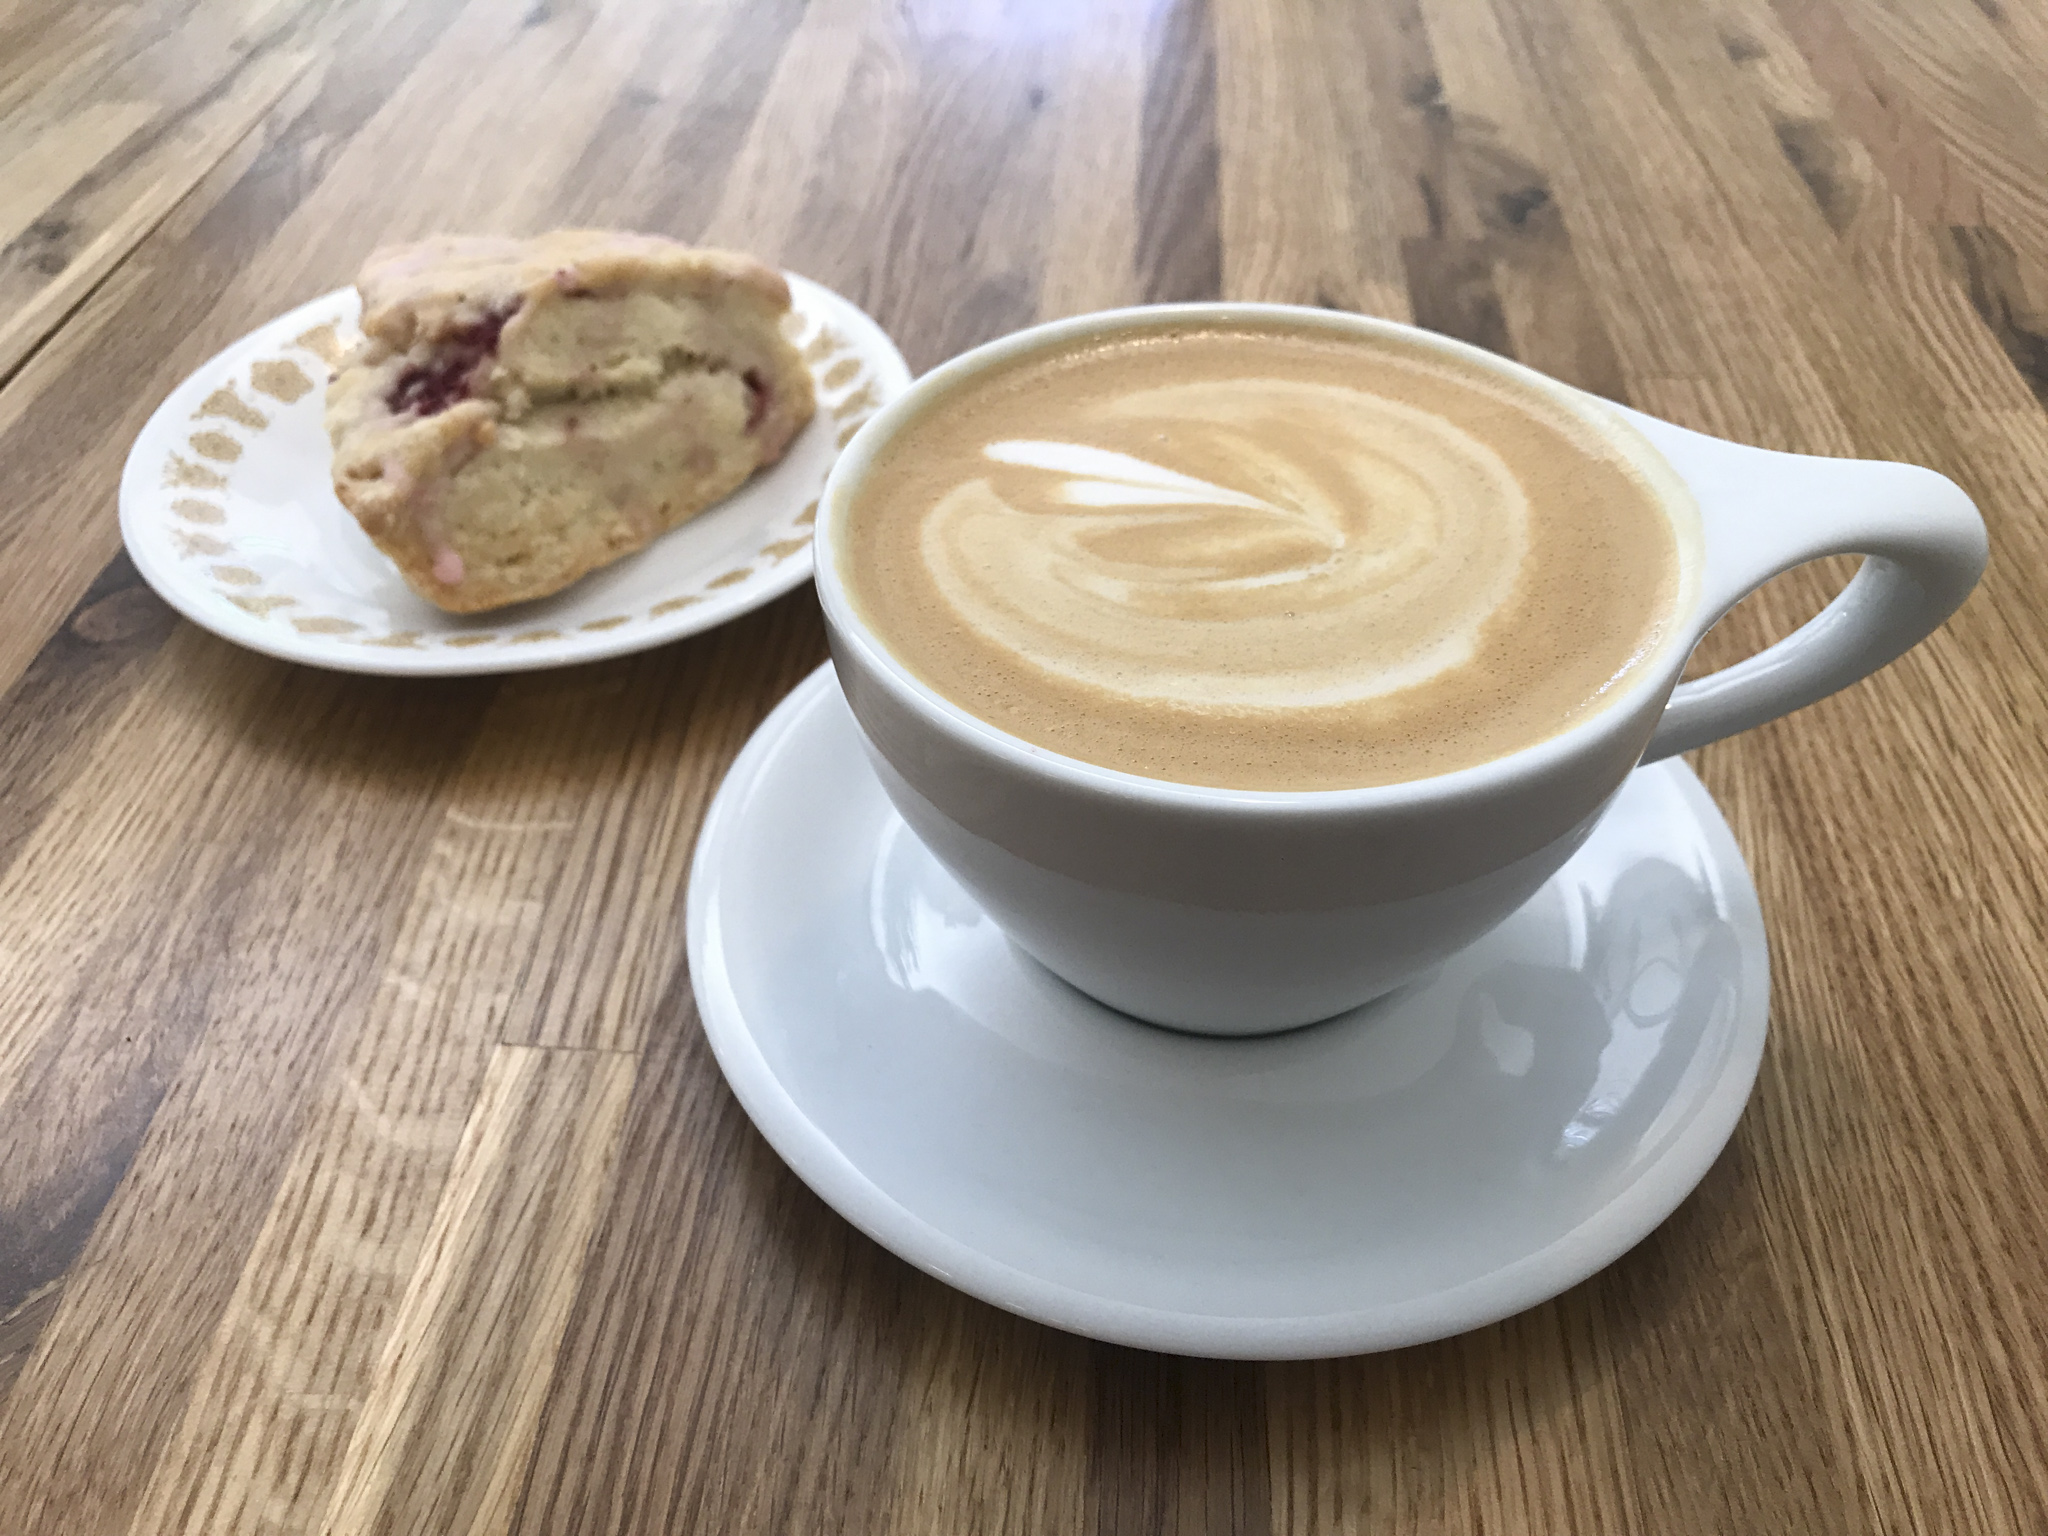 Latte with Almond Milk and Pastry